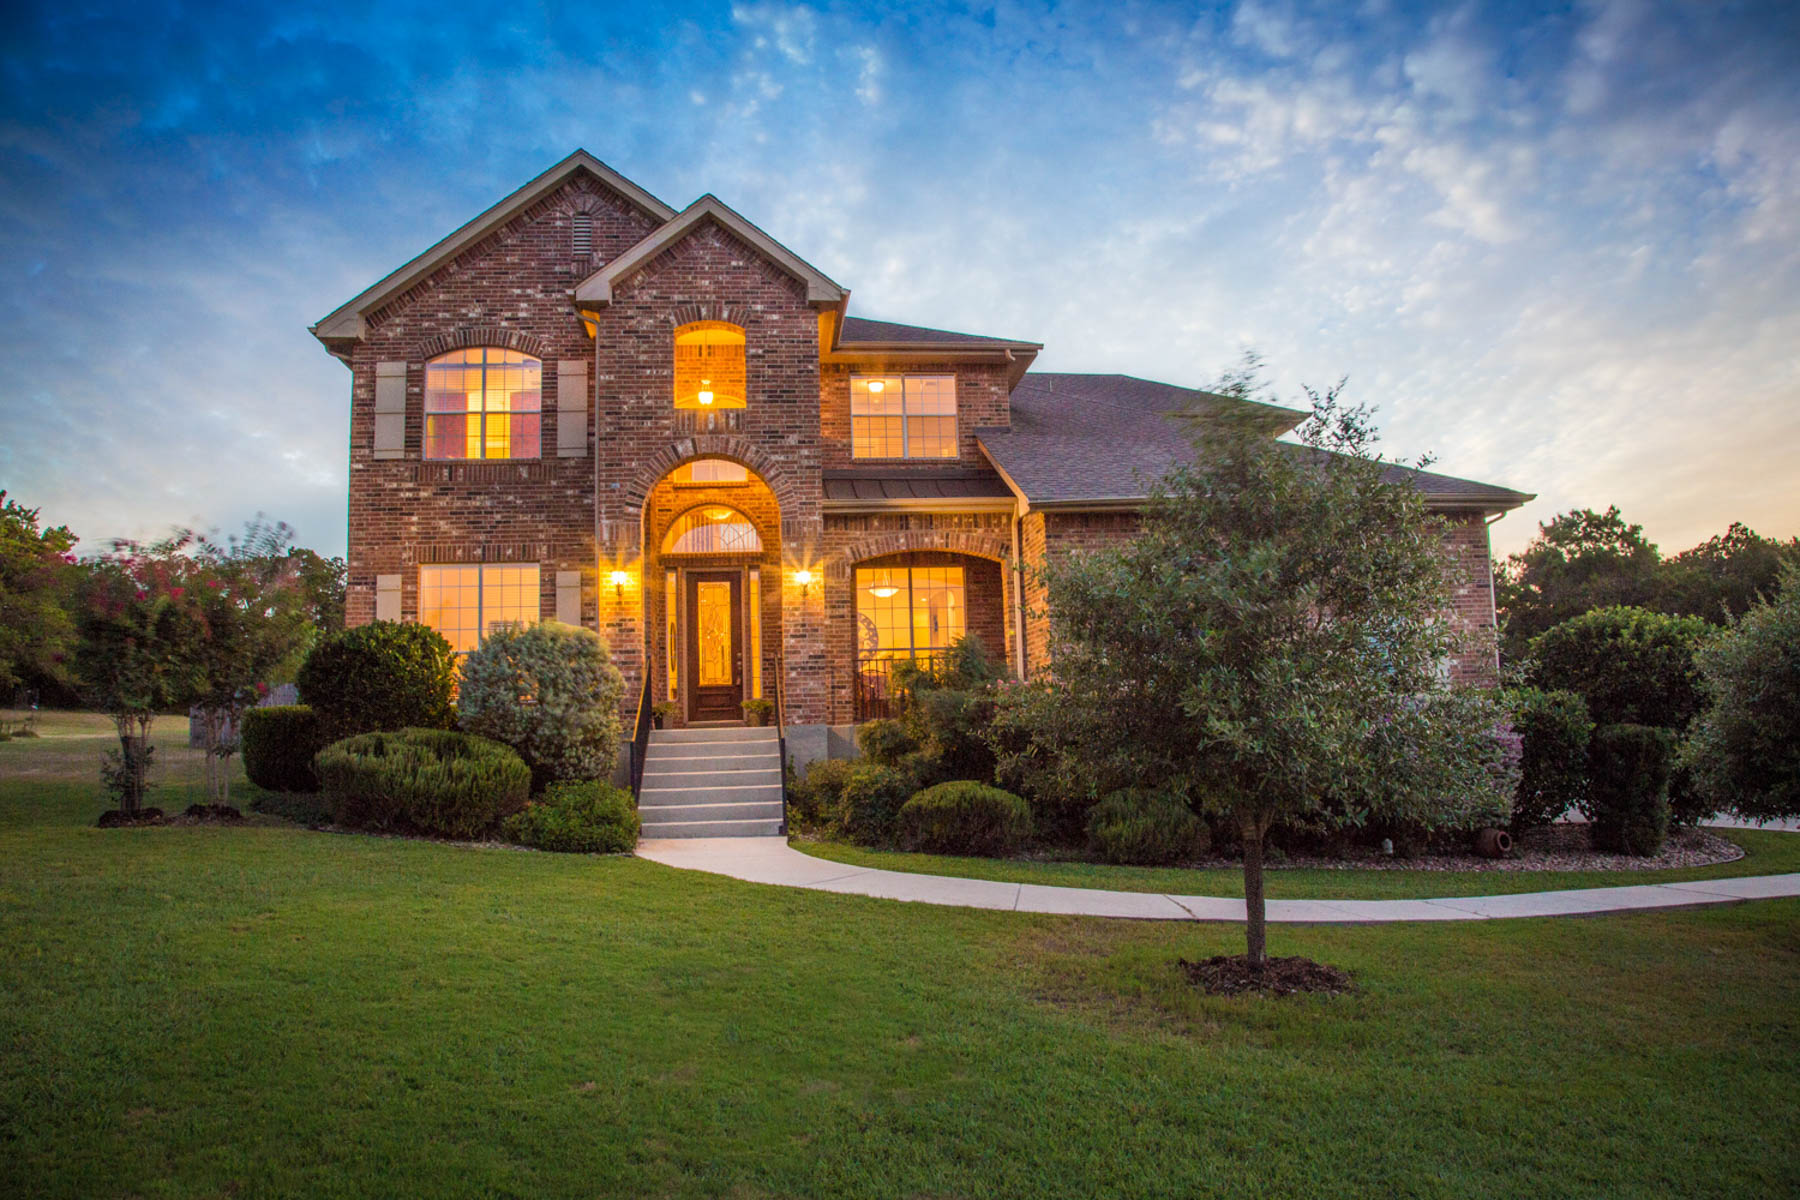 Single Family Home for Sale at The Enclave at Mission Hills Ranch 958 Santa Cruz New Braunfels, Texas 78132 United States